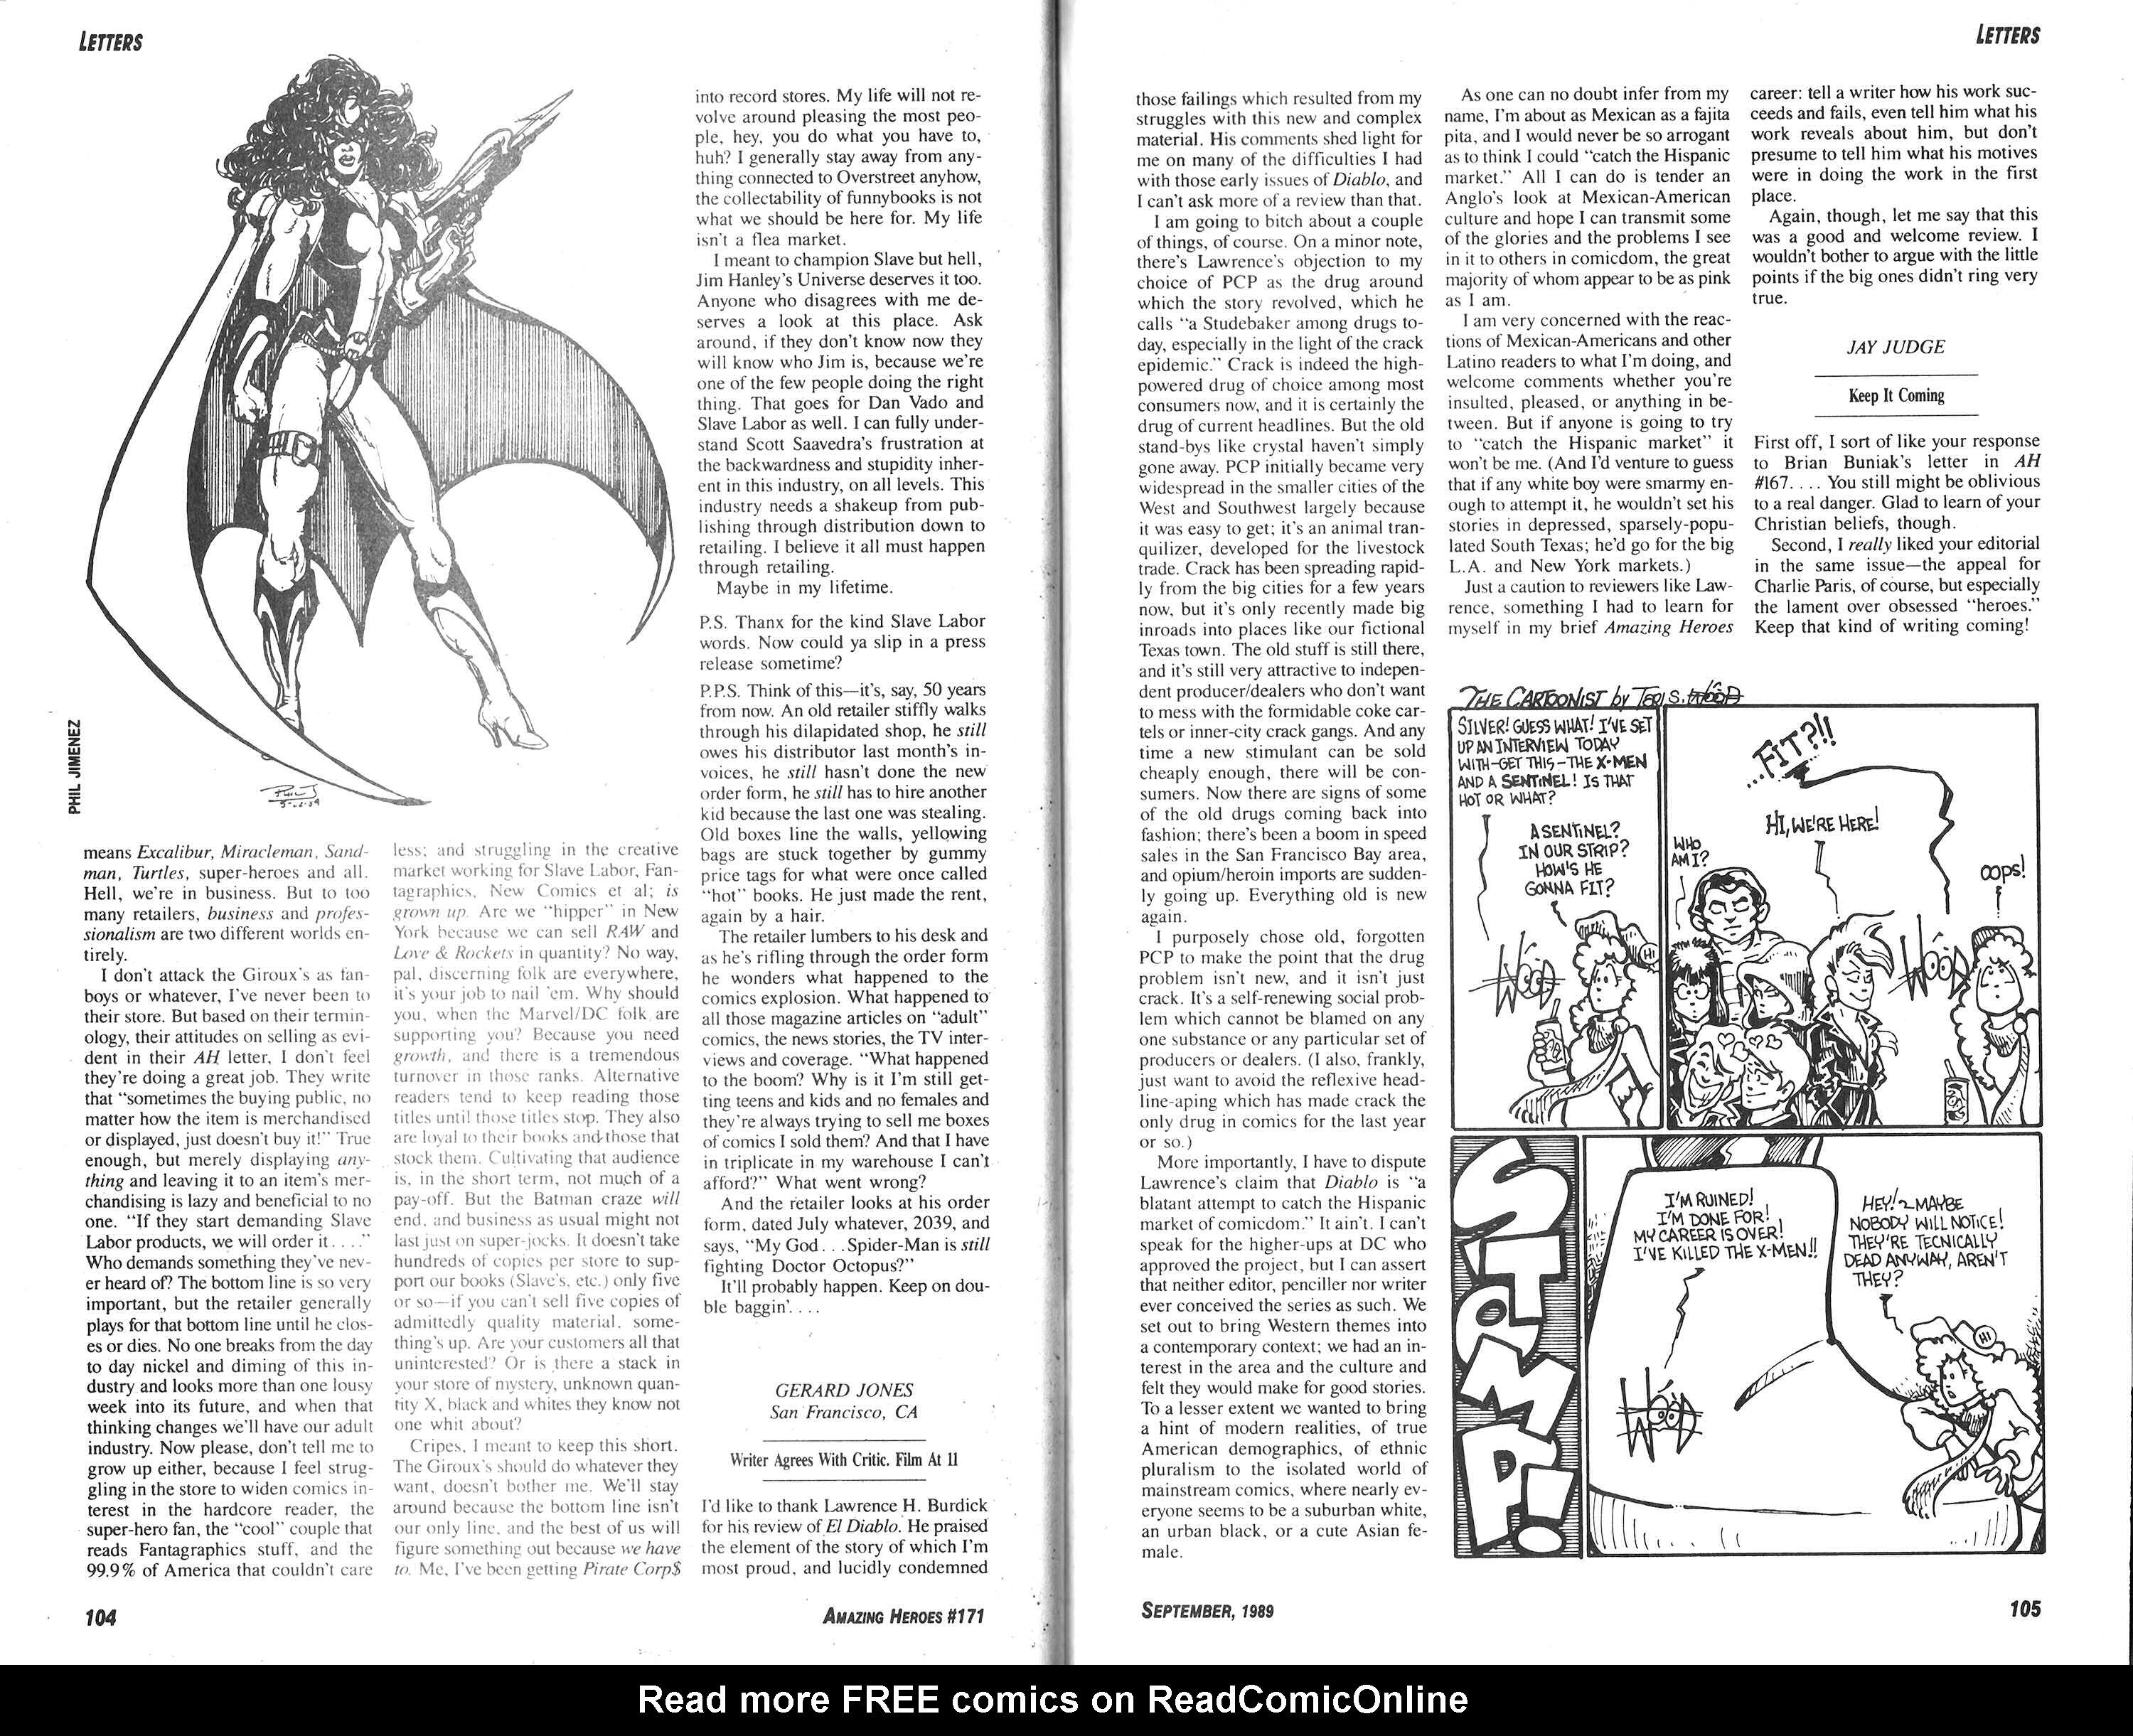 Read online Amazing Heroes comic -  Issue #171 - 53